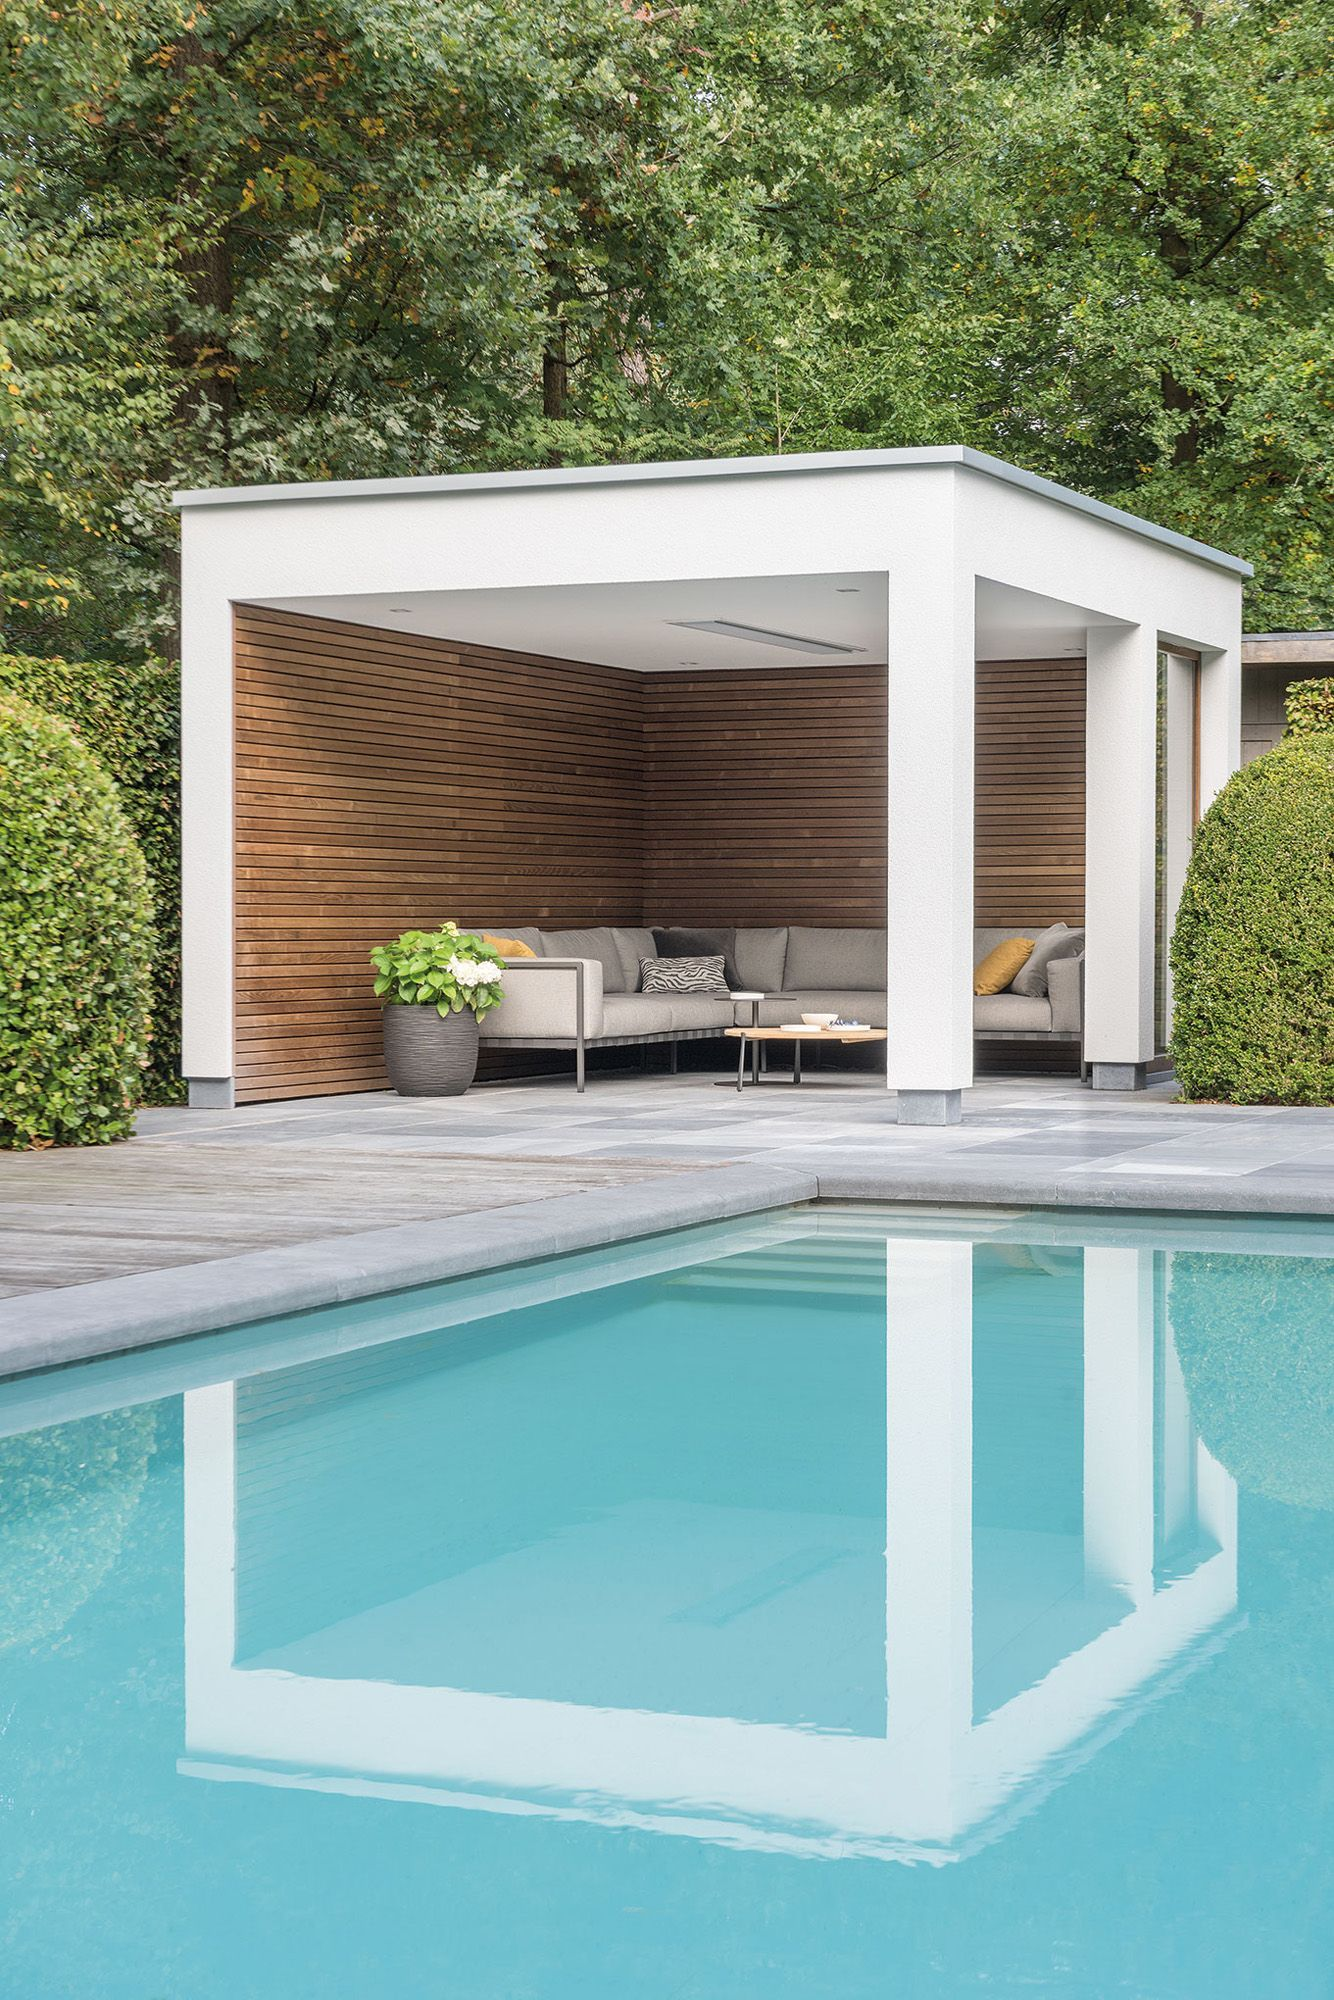 Moderne poolhouse in hout | Livinlodge by Carpentier | Poolhouses in ...